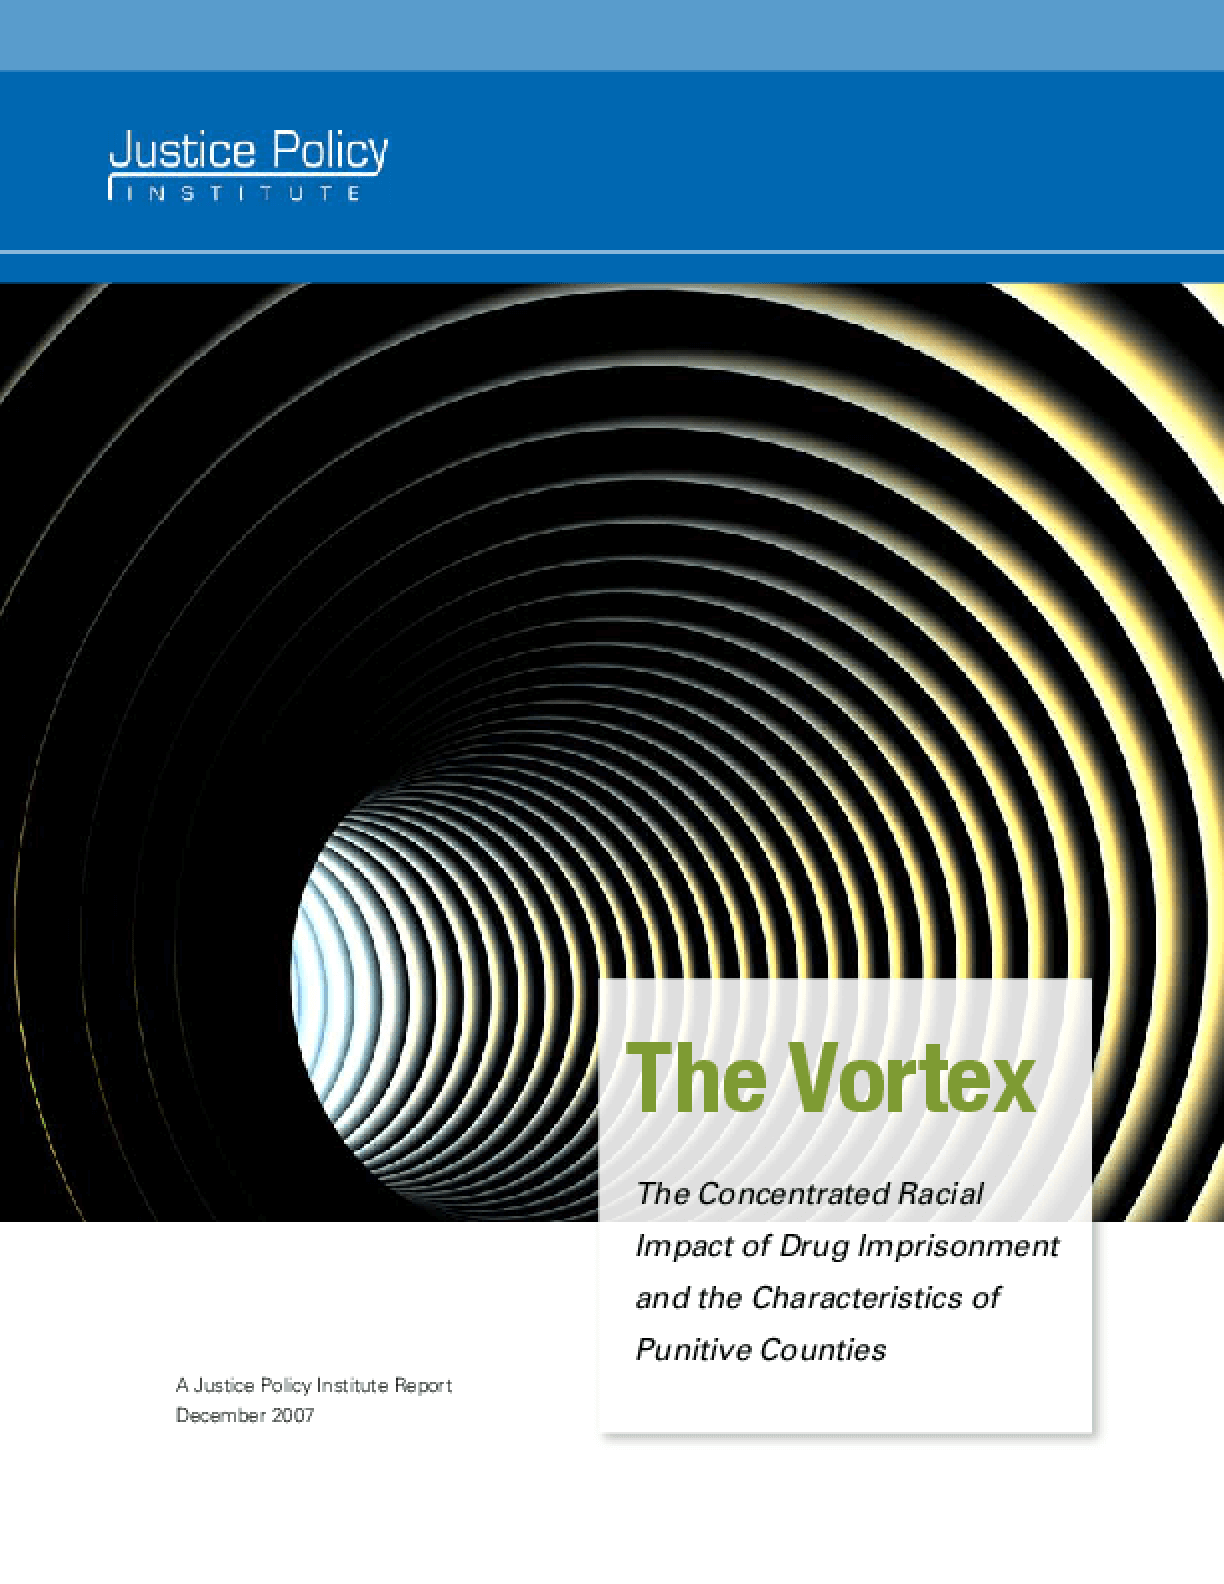 The Vortex: The Concentrated Racial Impact of Drug Imprisonment and the Characteristics of Punitive Counties